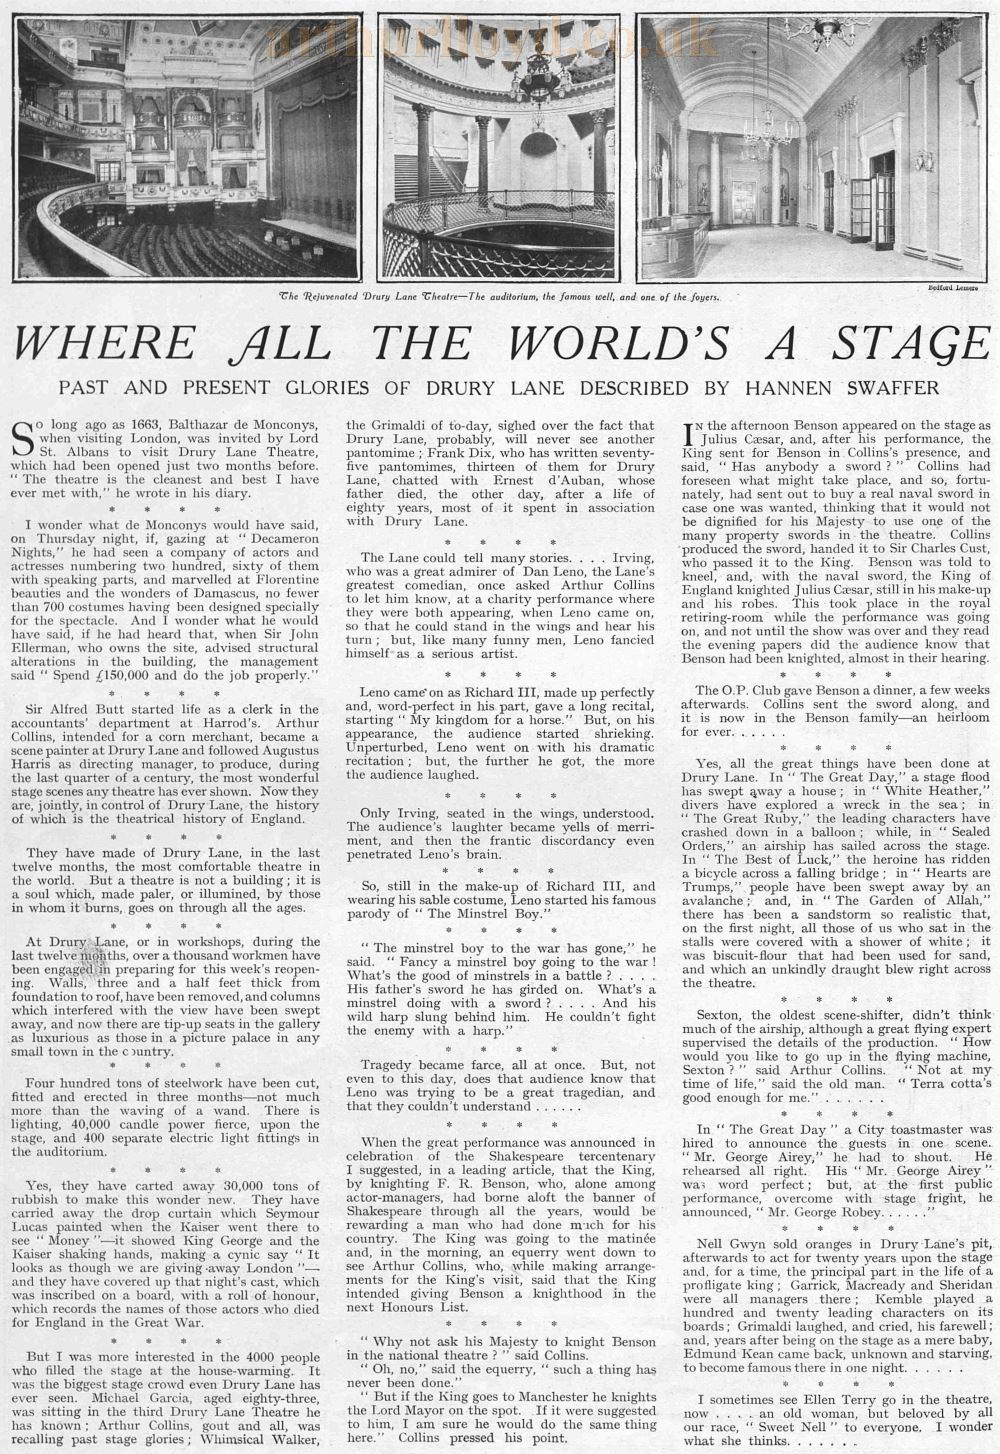 Where all the World's a stage - From The Graphic, April 22nd, 1922.